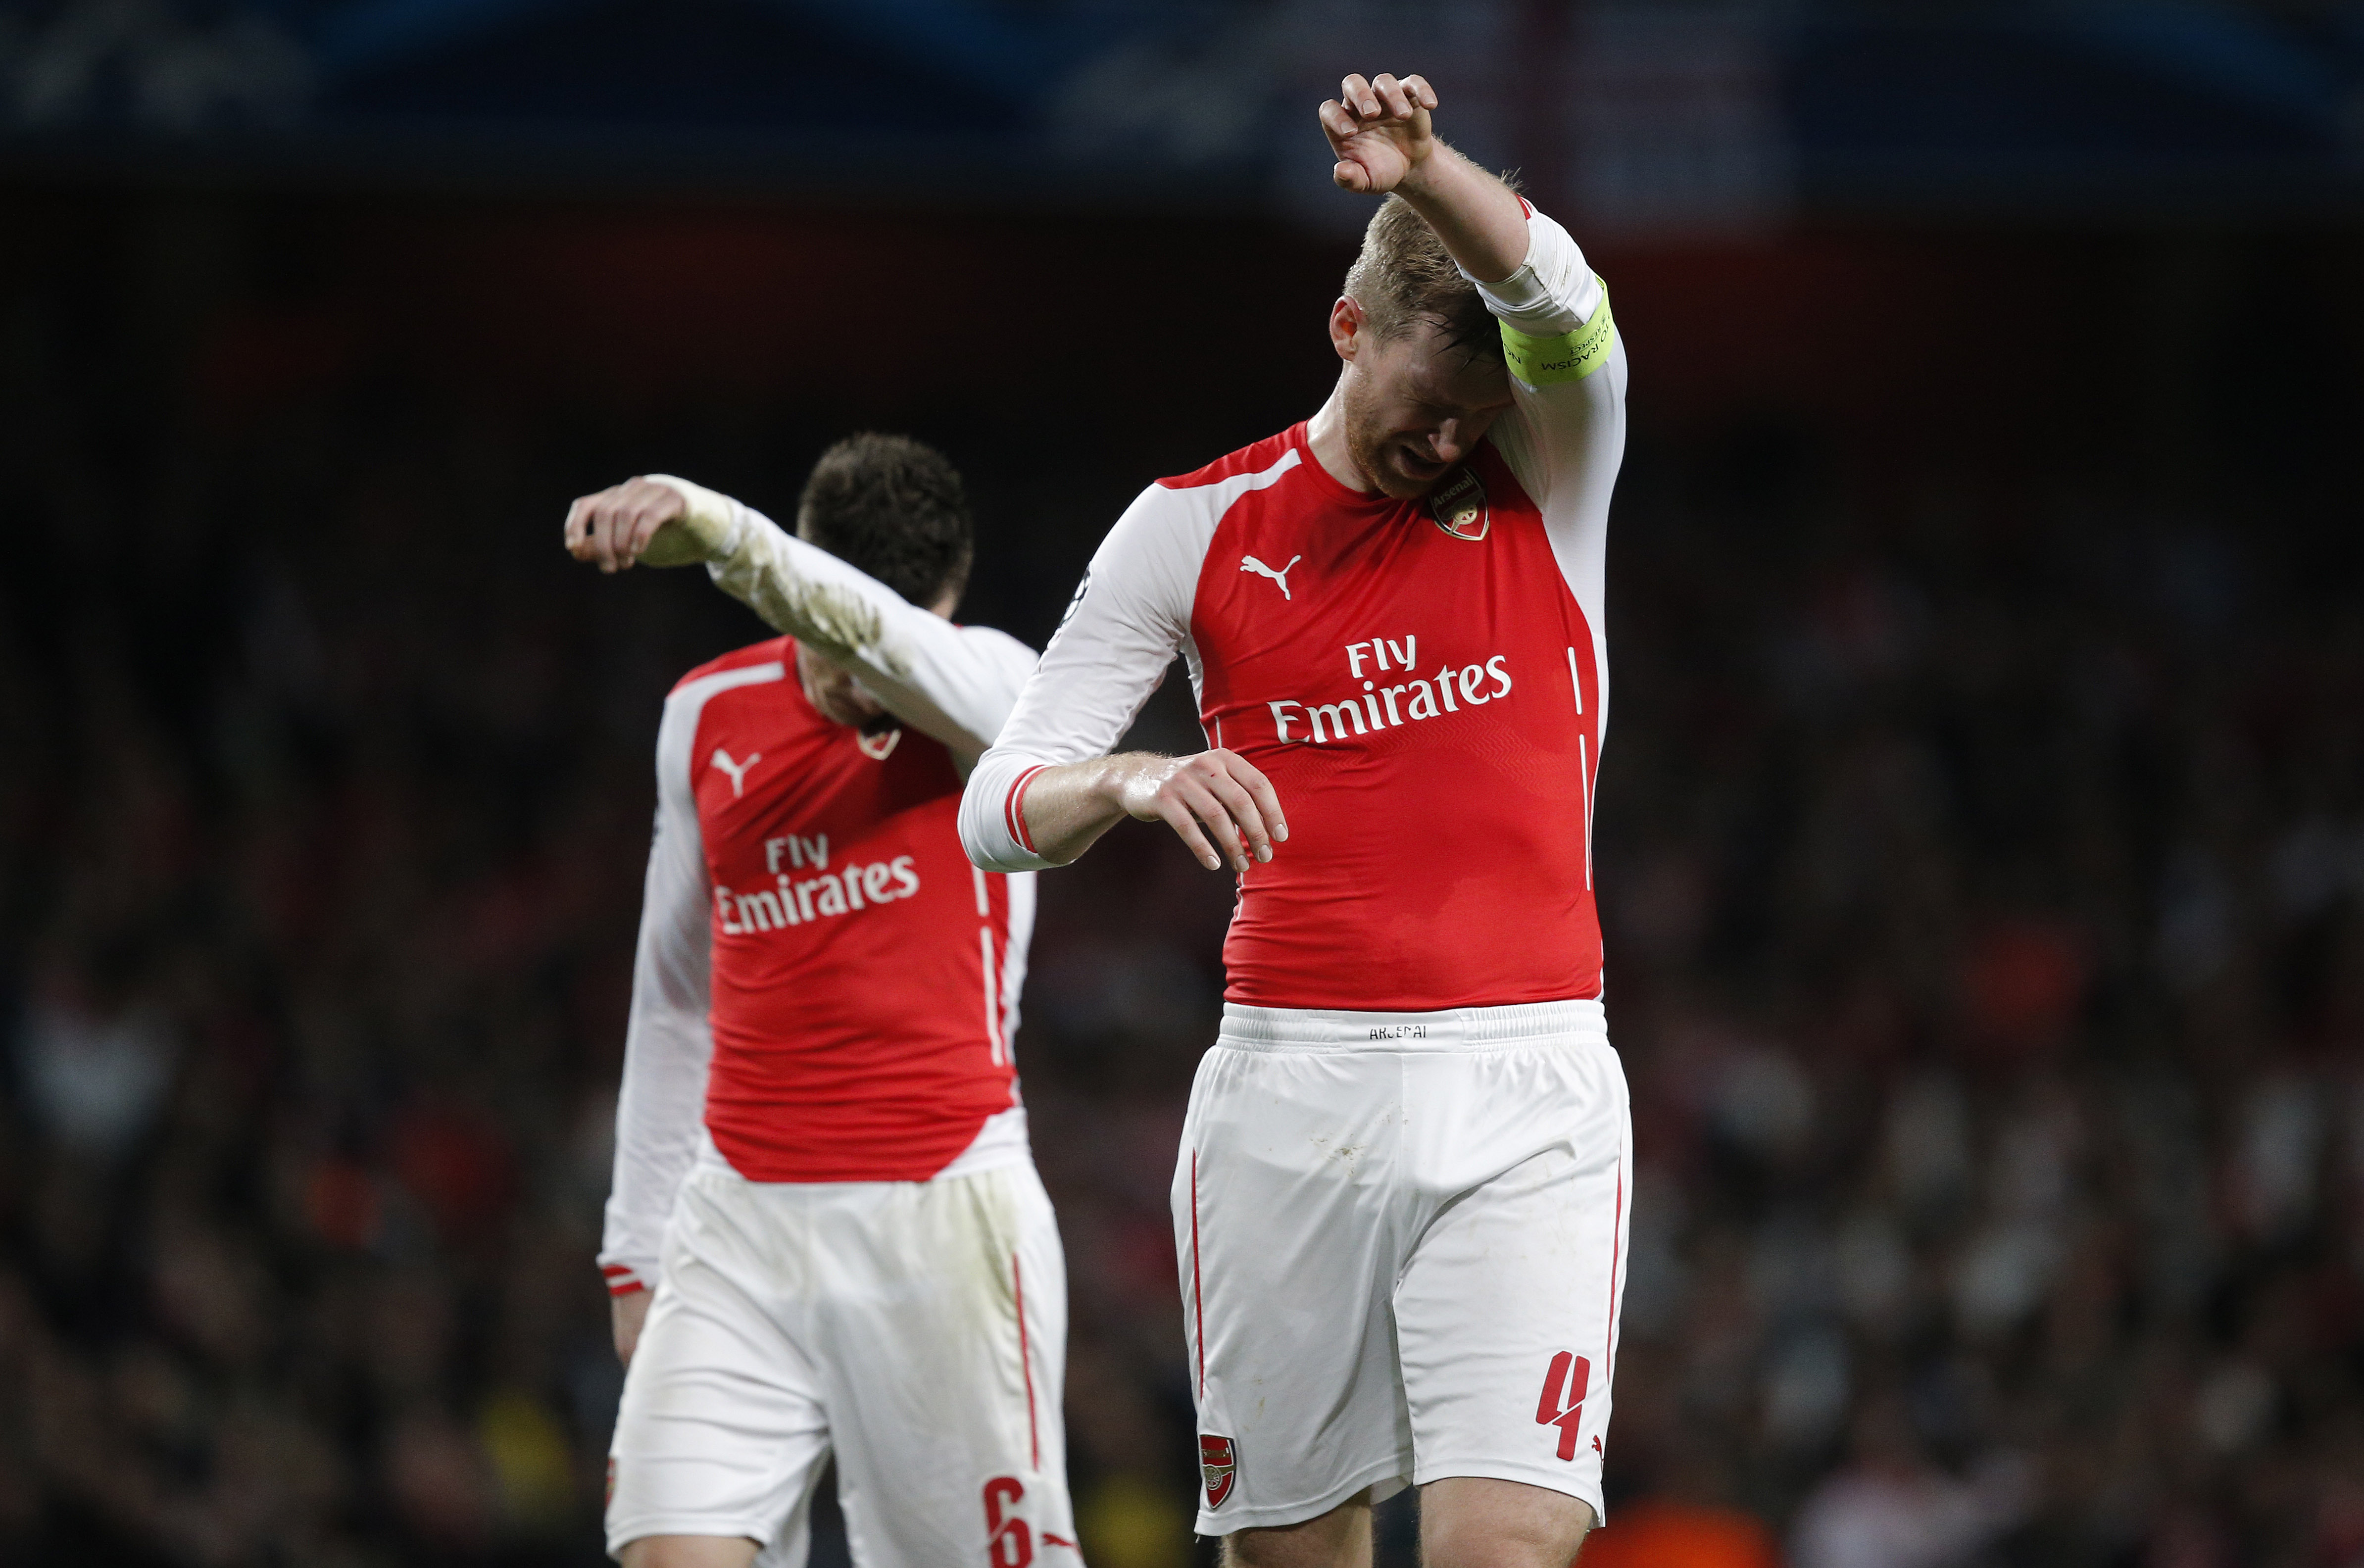 Arsenal: Koscielny And Mertesacker Contracts Raise Huge Problems